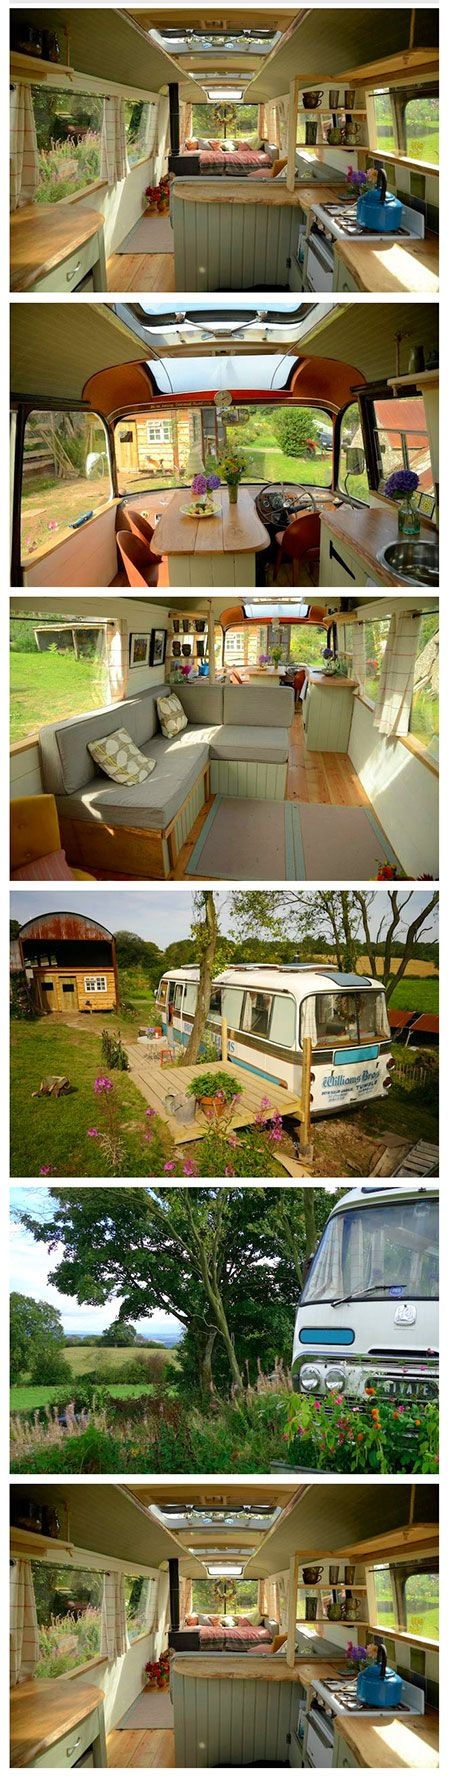 Live in a bus #camping #caravan #glamping: